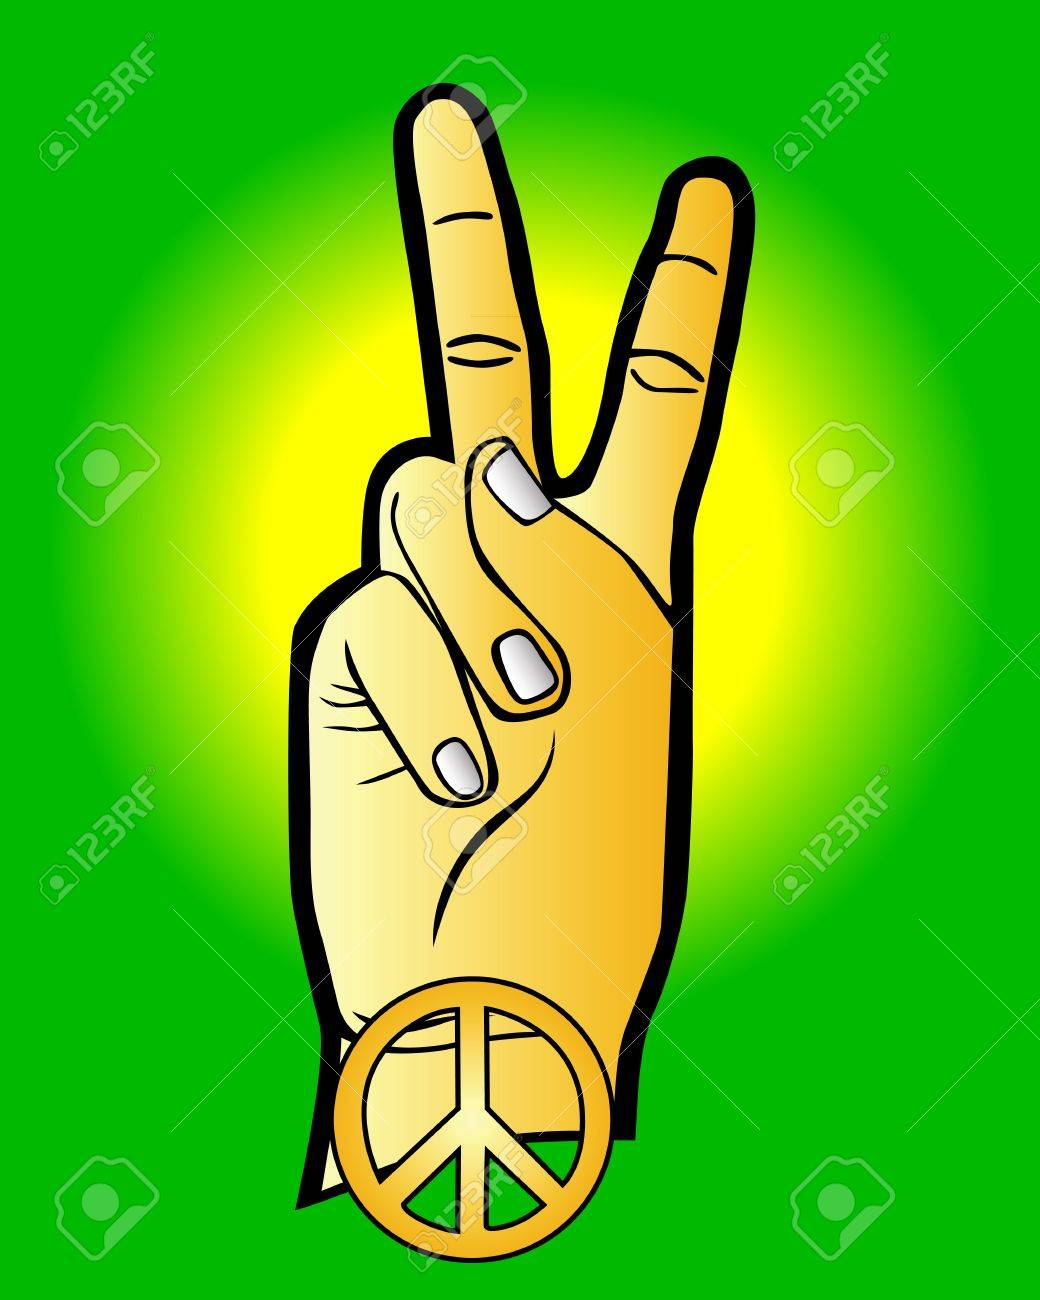 Hand As A Symbol Of Peace On A Green Background Royalty Free